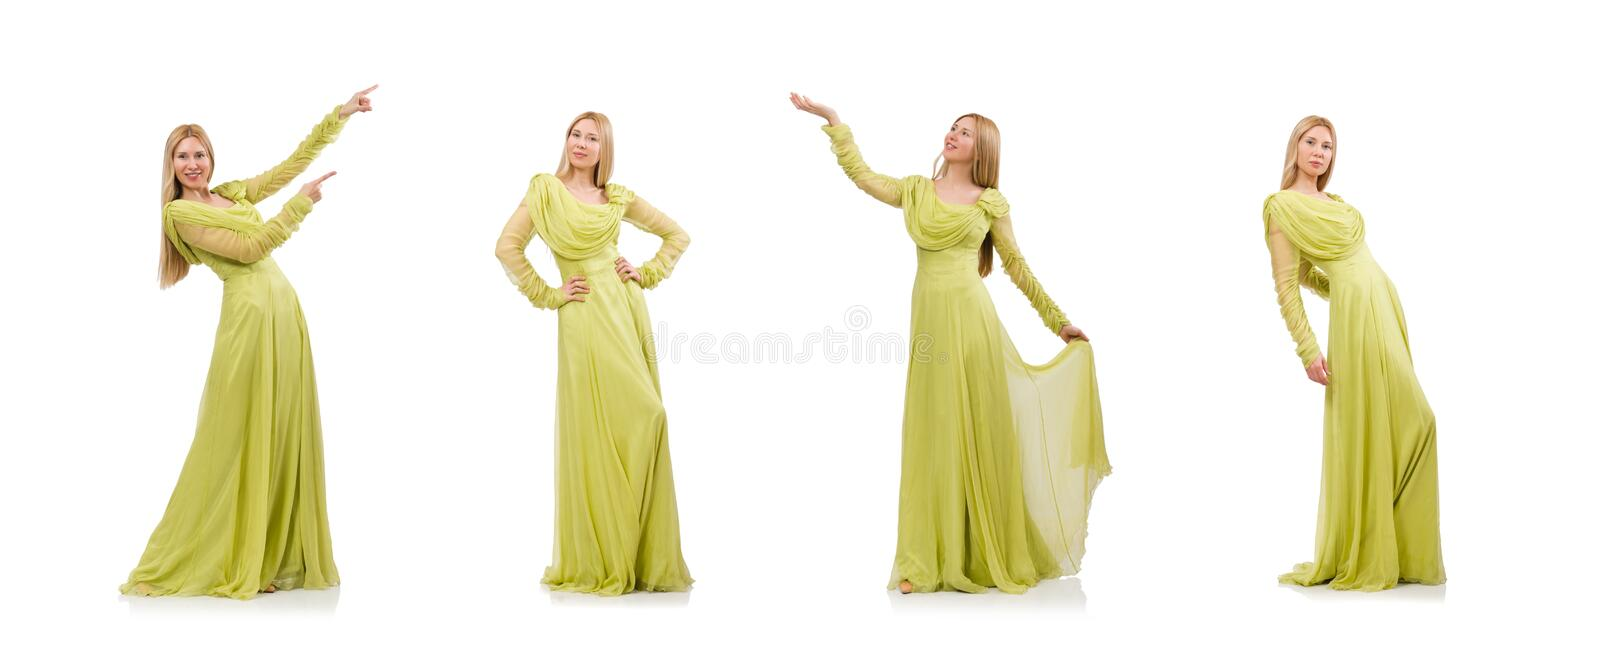 Pretty girl in elegant green dress isolated on white royalty free stock photography